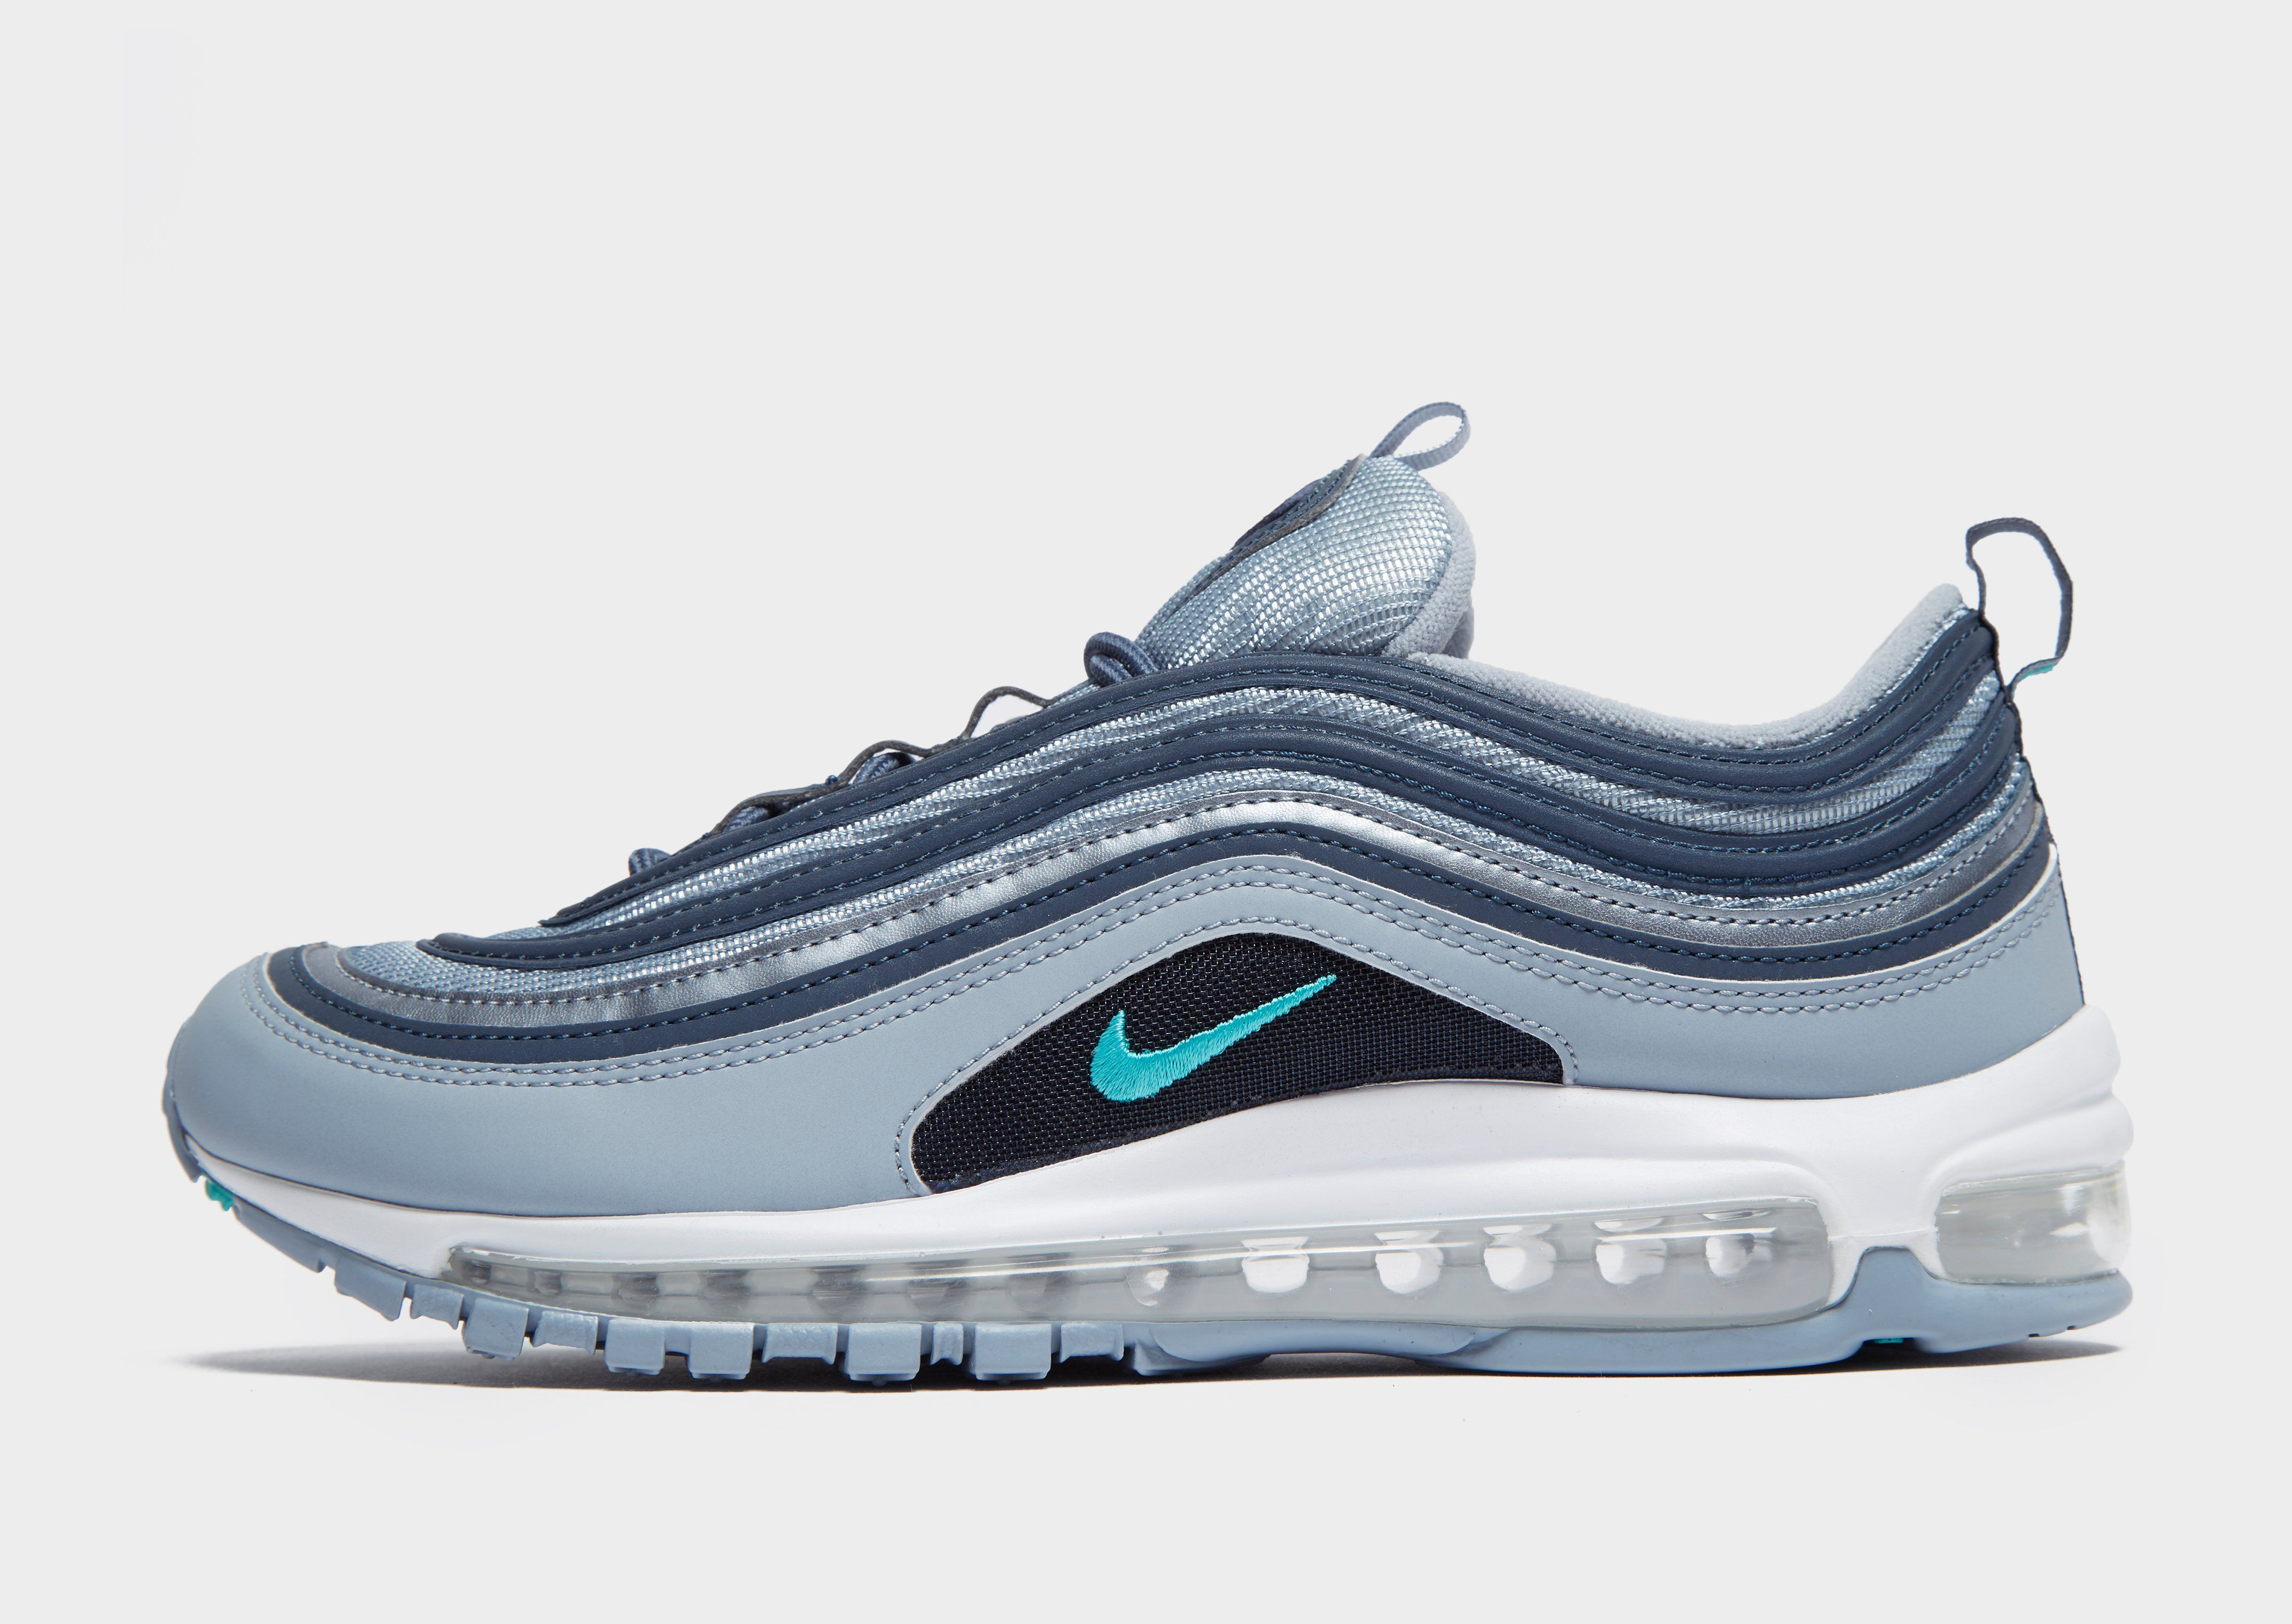 acheter populaire 970cb 36ee6 Nike Air Max 97 Essential   JD Sports